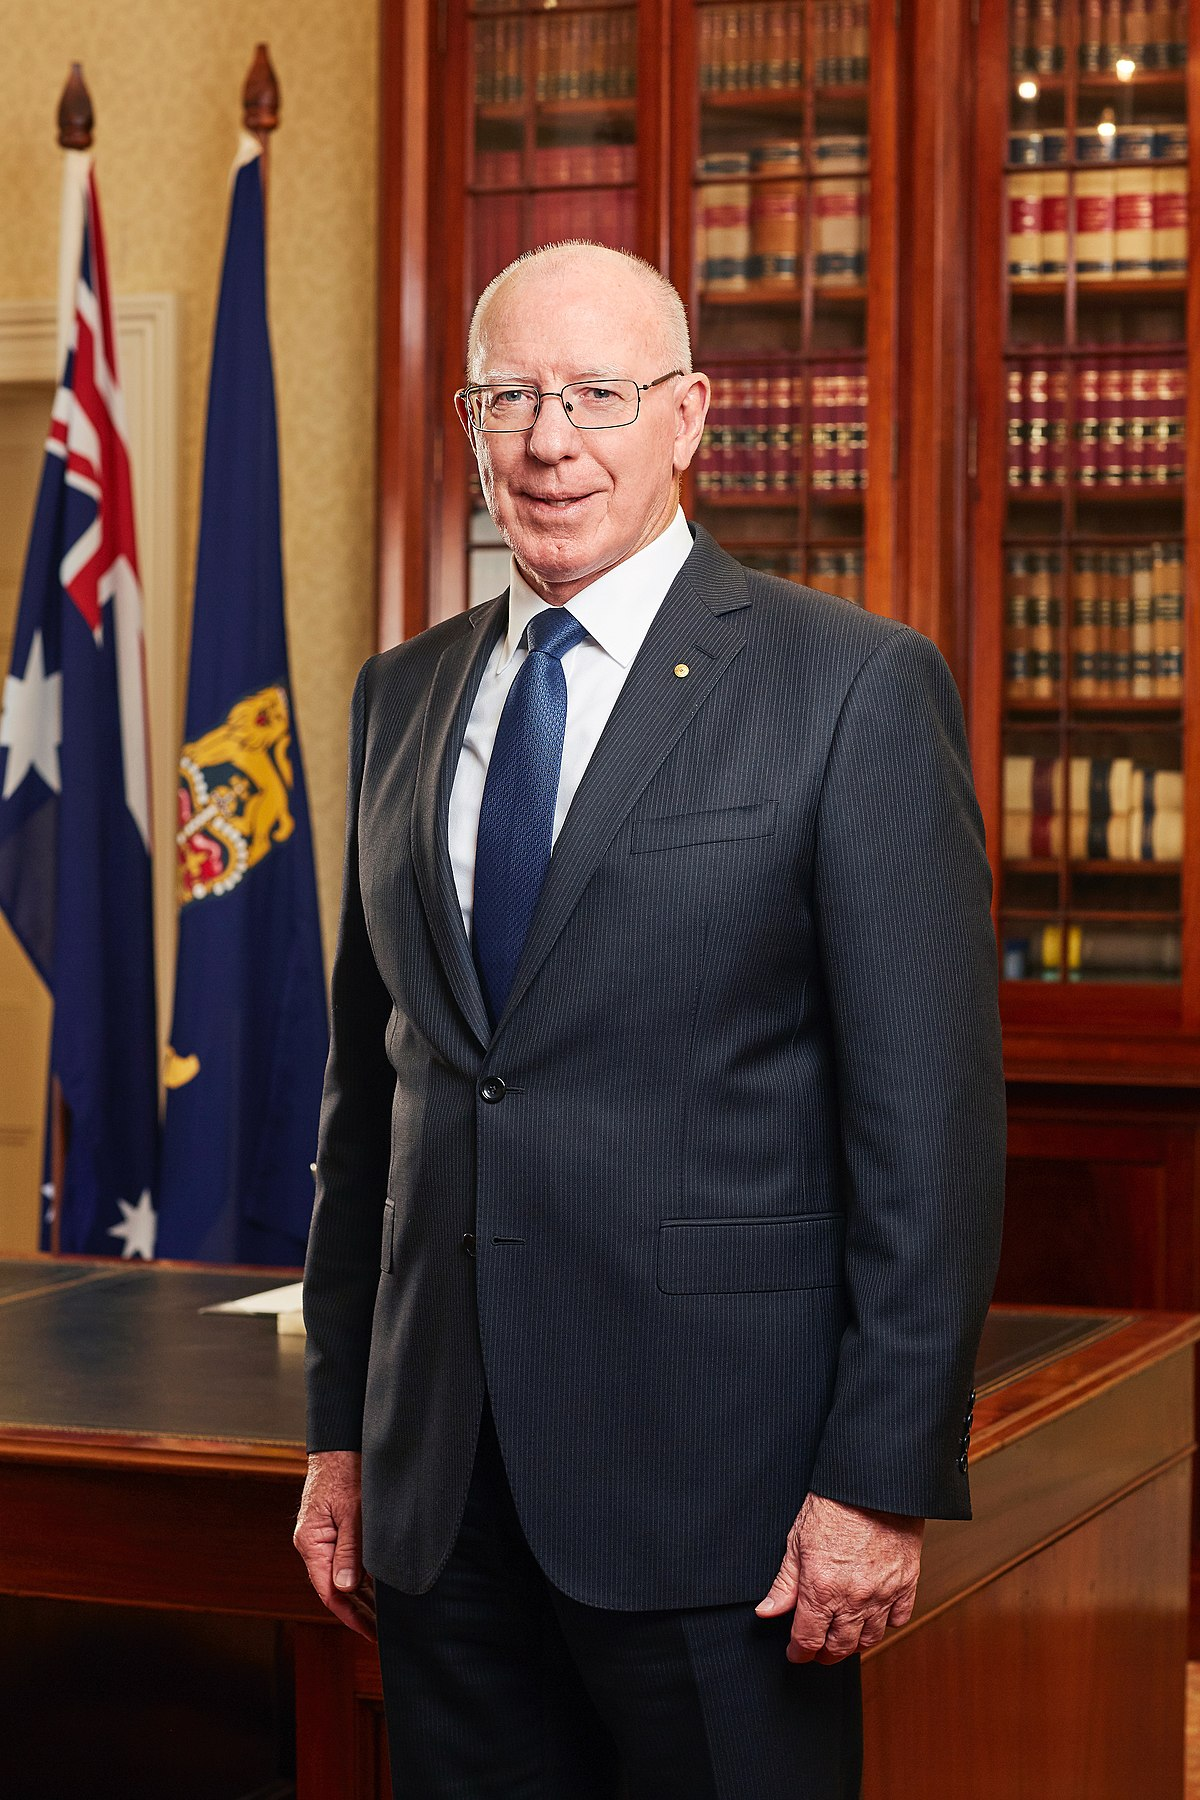 His Excellency General The Honourable David John Hurley